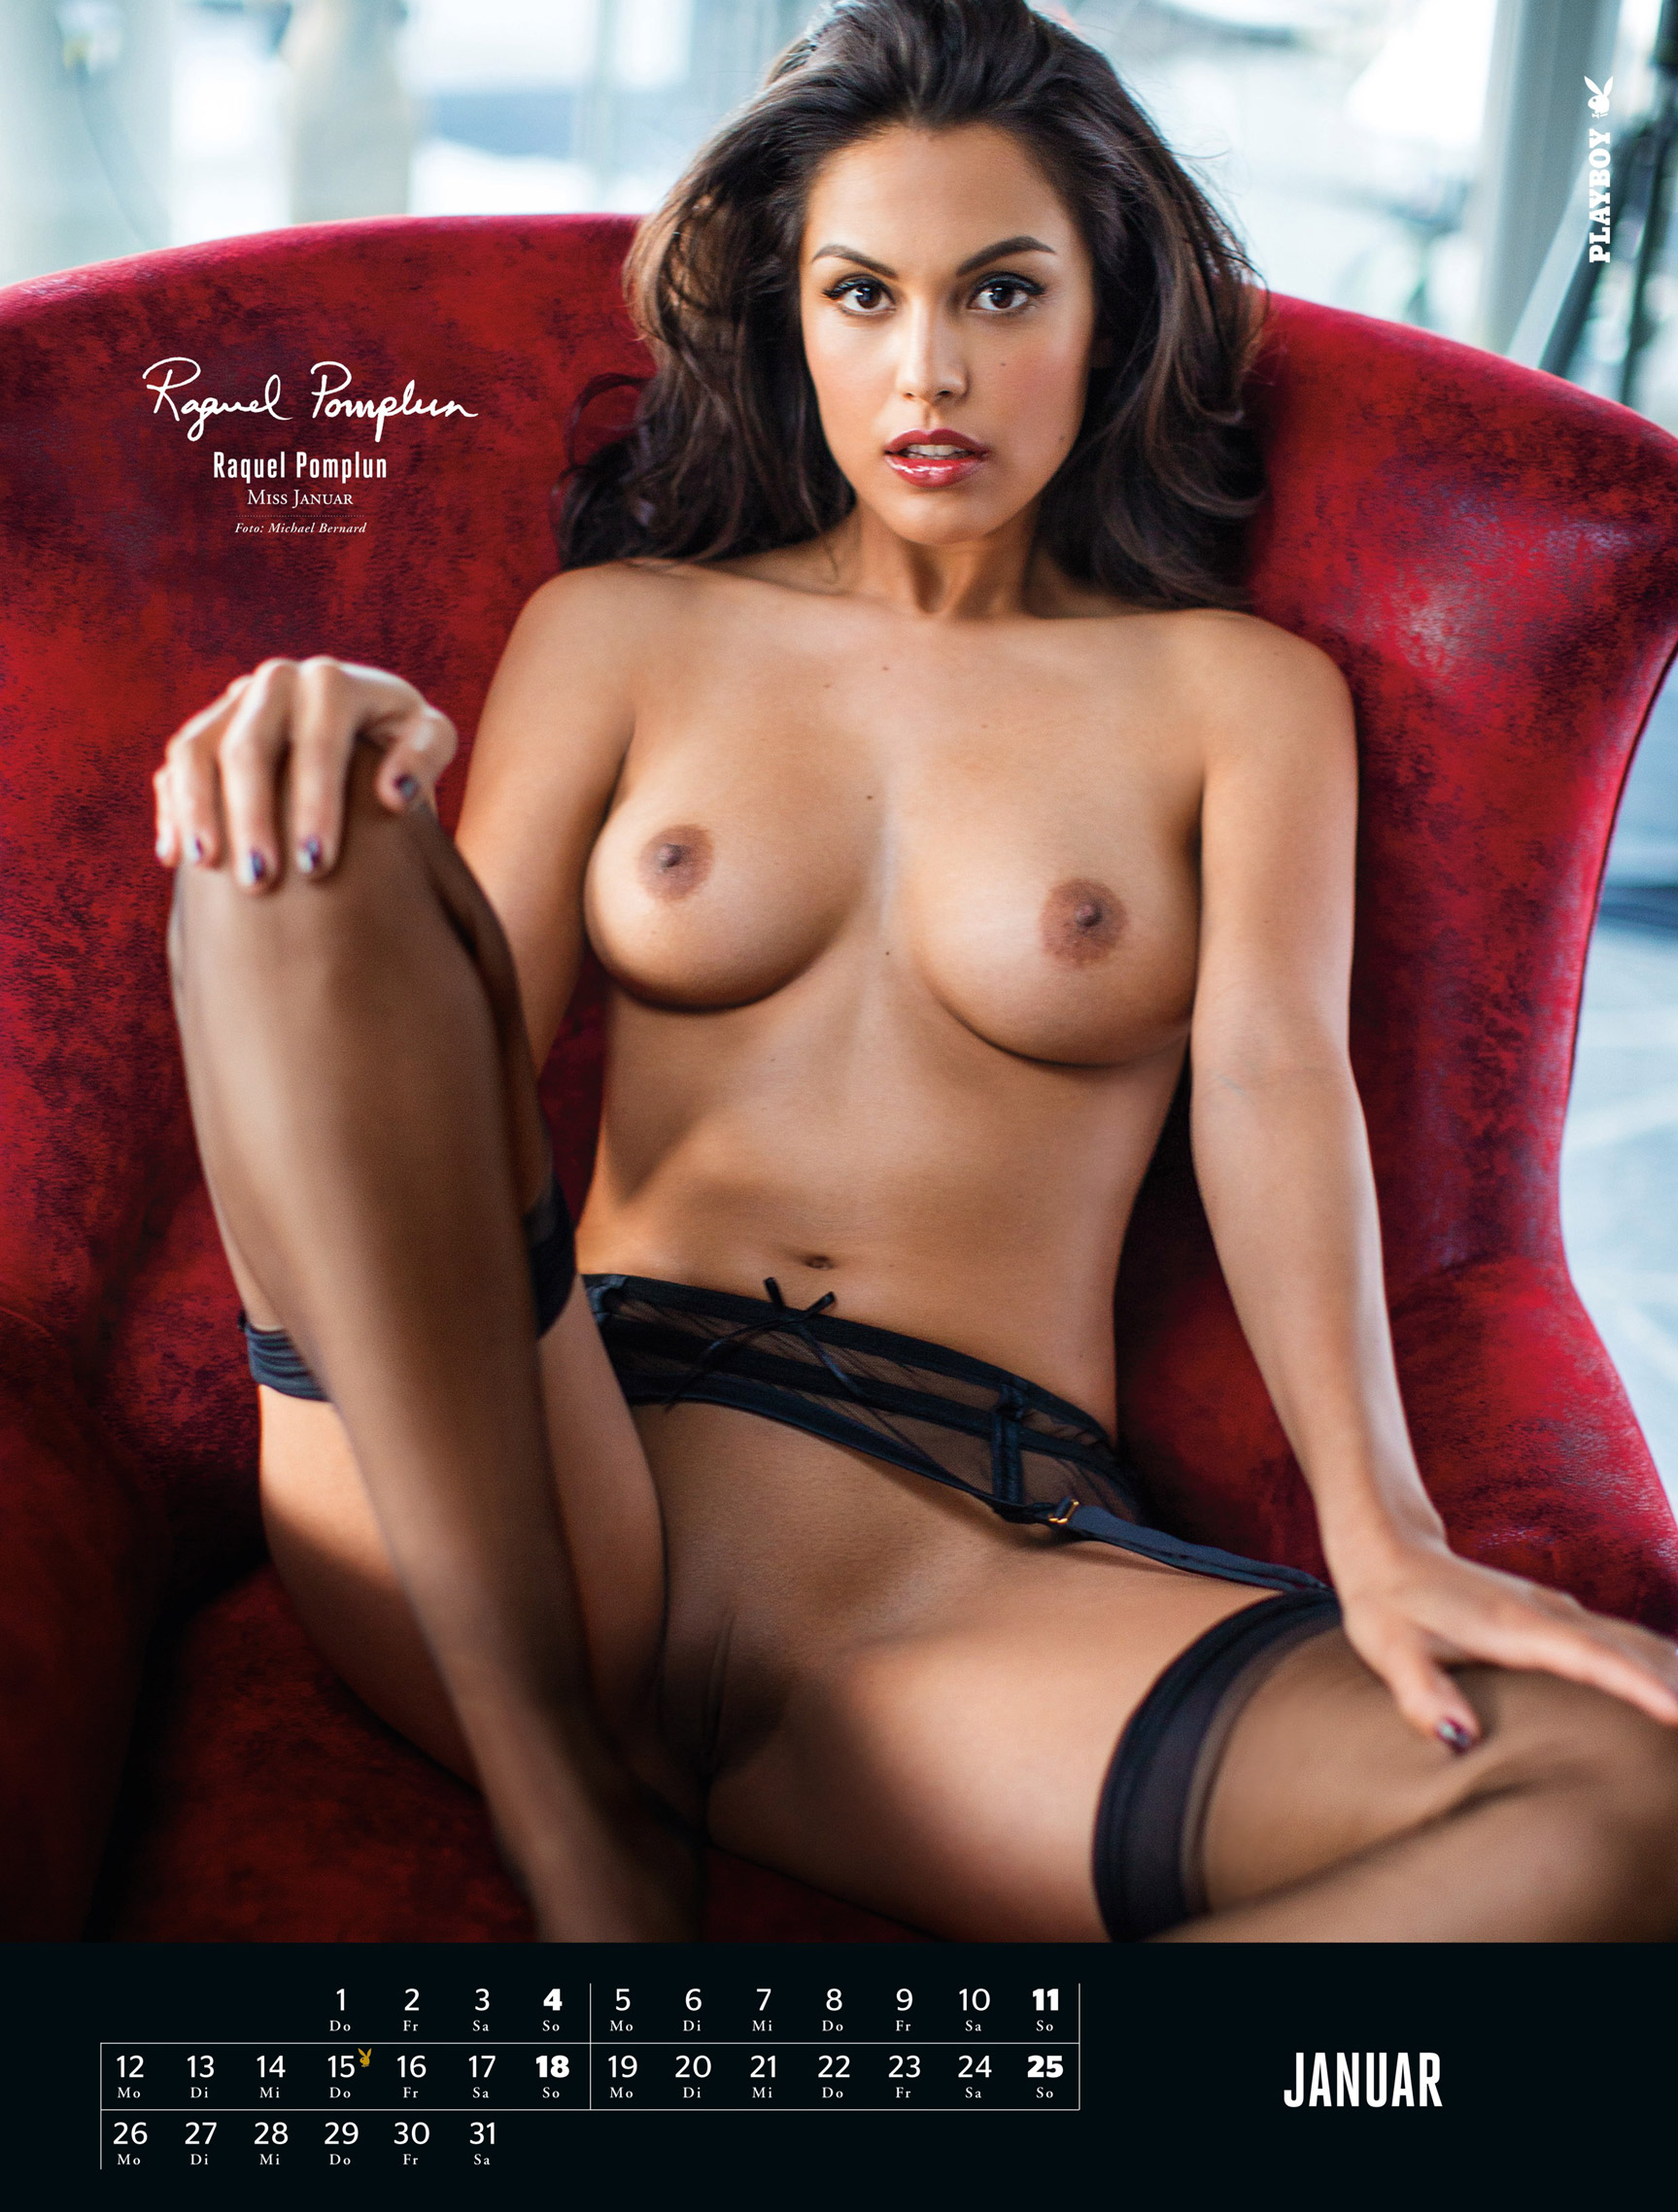 эротический календарь Playboy Germany Playmate Calendar 2015 - Miss January 2014 Raquel Pomplun